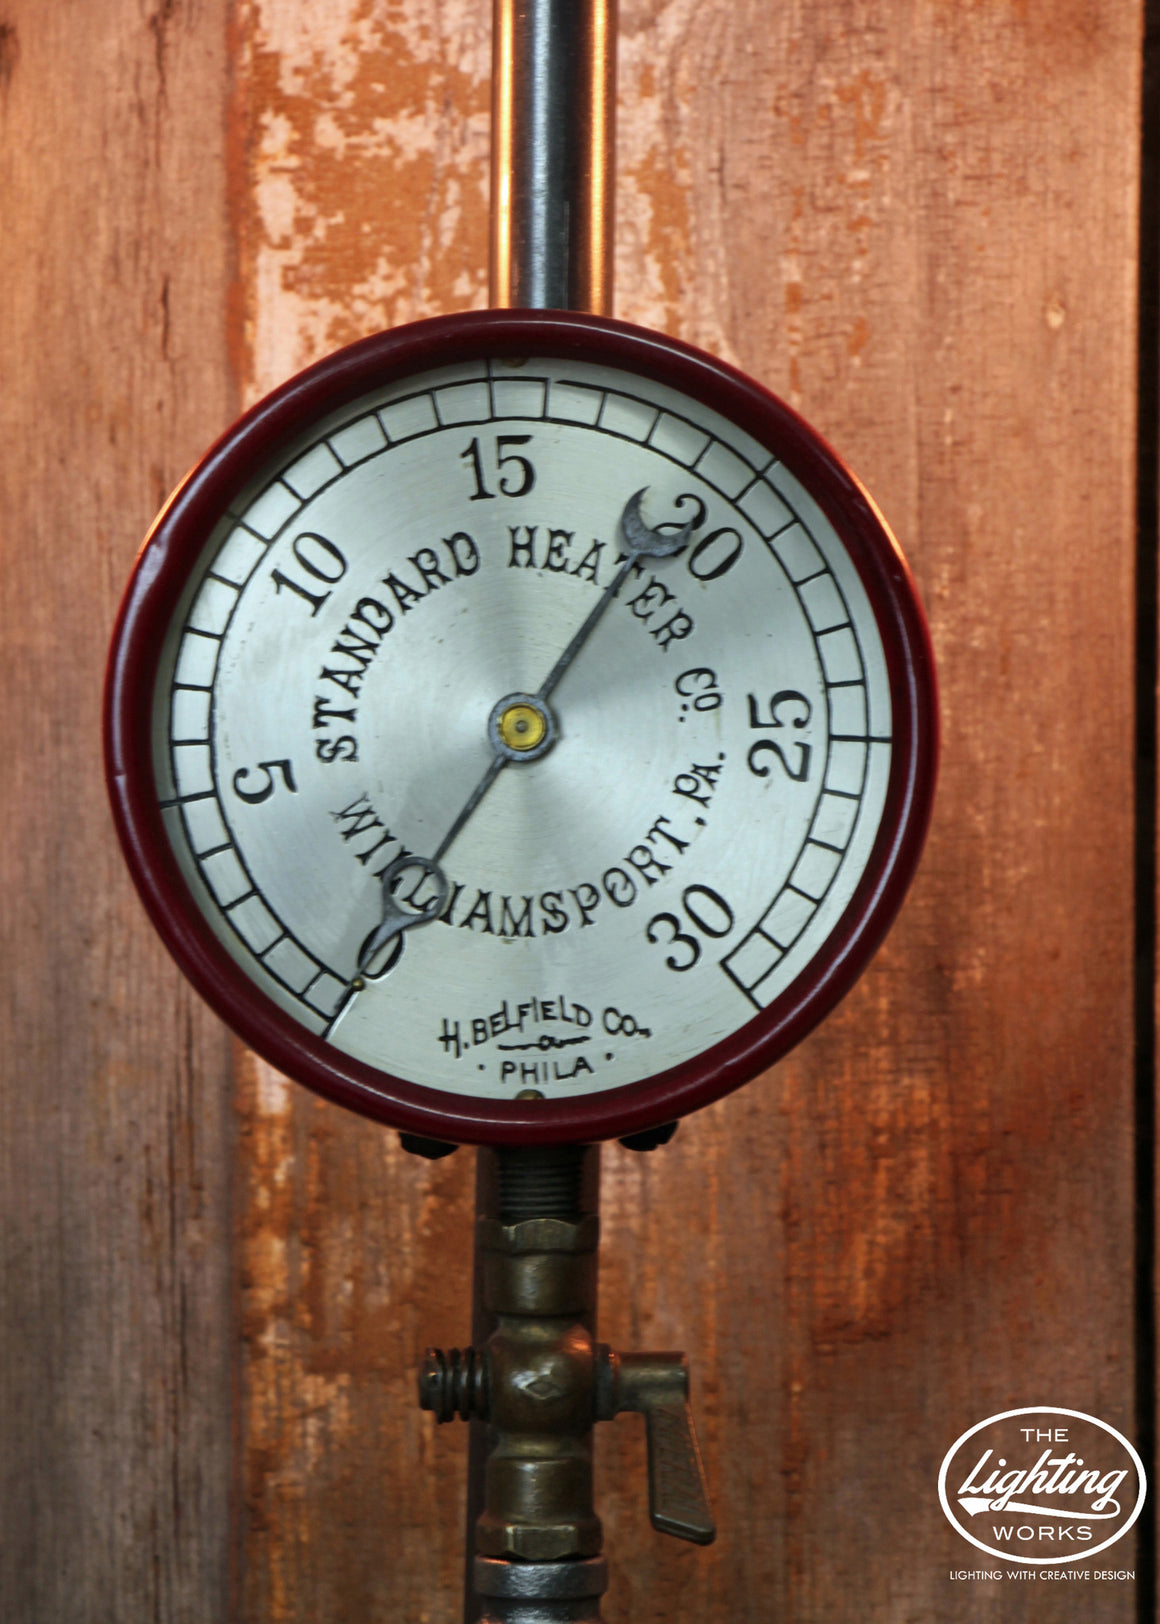 Steampunk Industrial Lamp with a Large Pressure Gauge - The Lighting Works